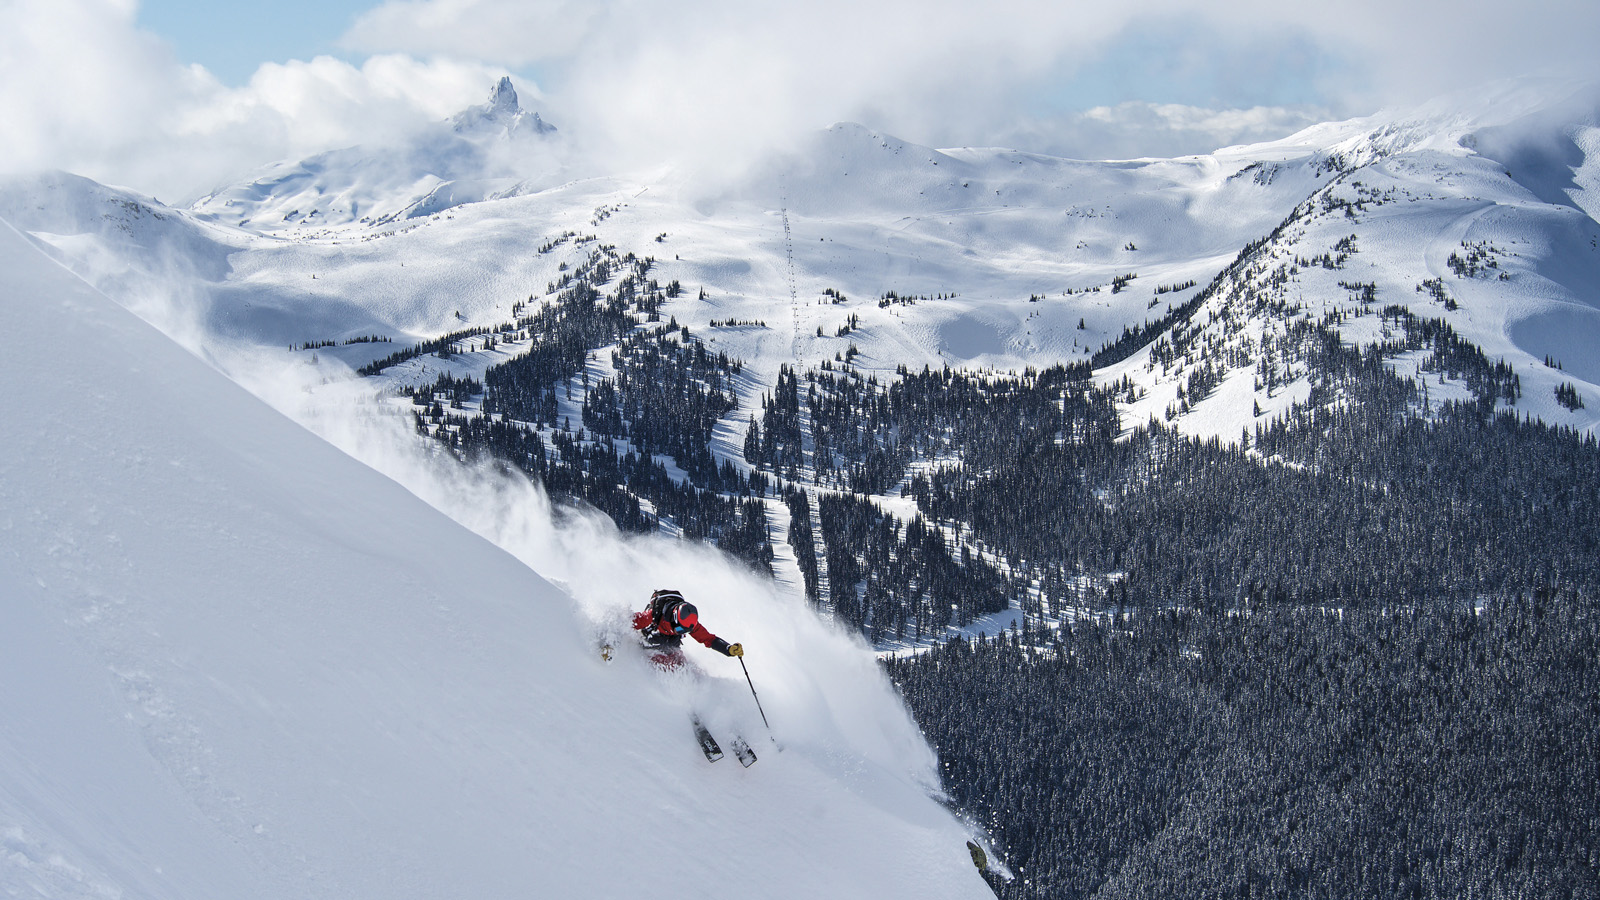 Canadian Road Trip: Whistler Blackcomb | FREESKIER